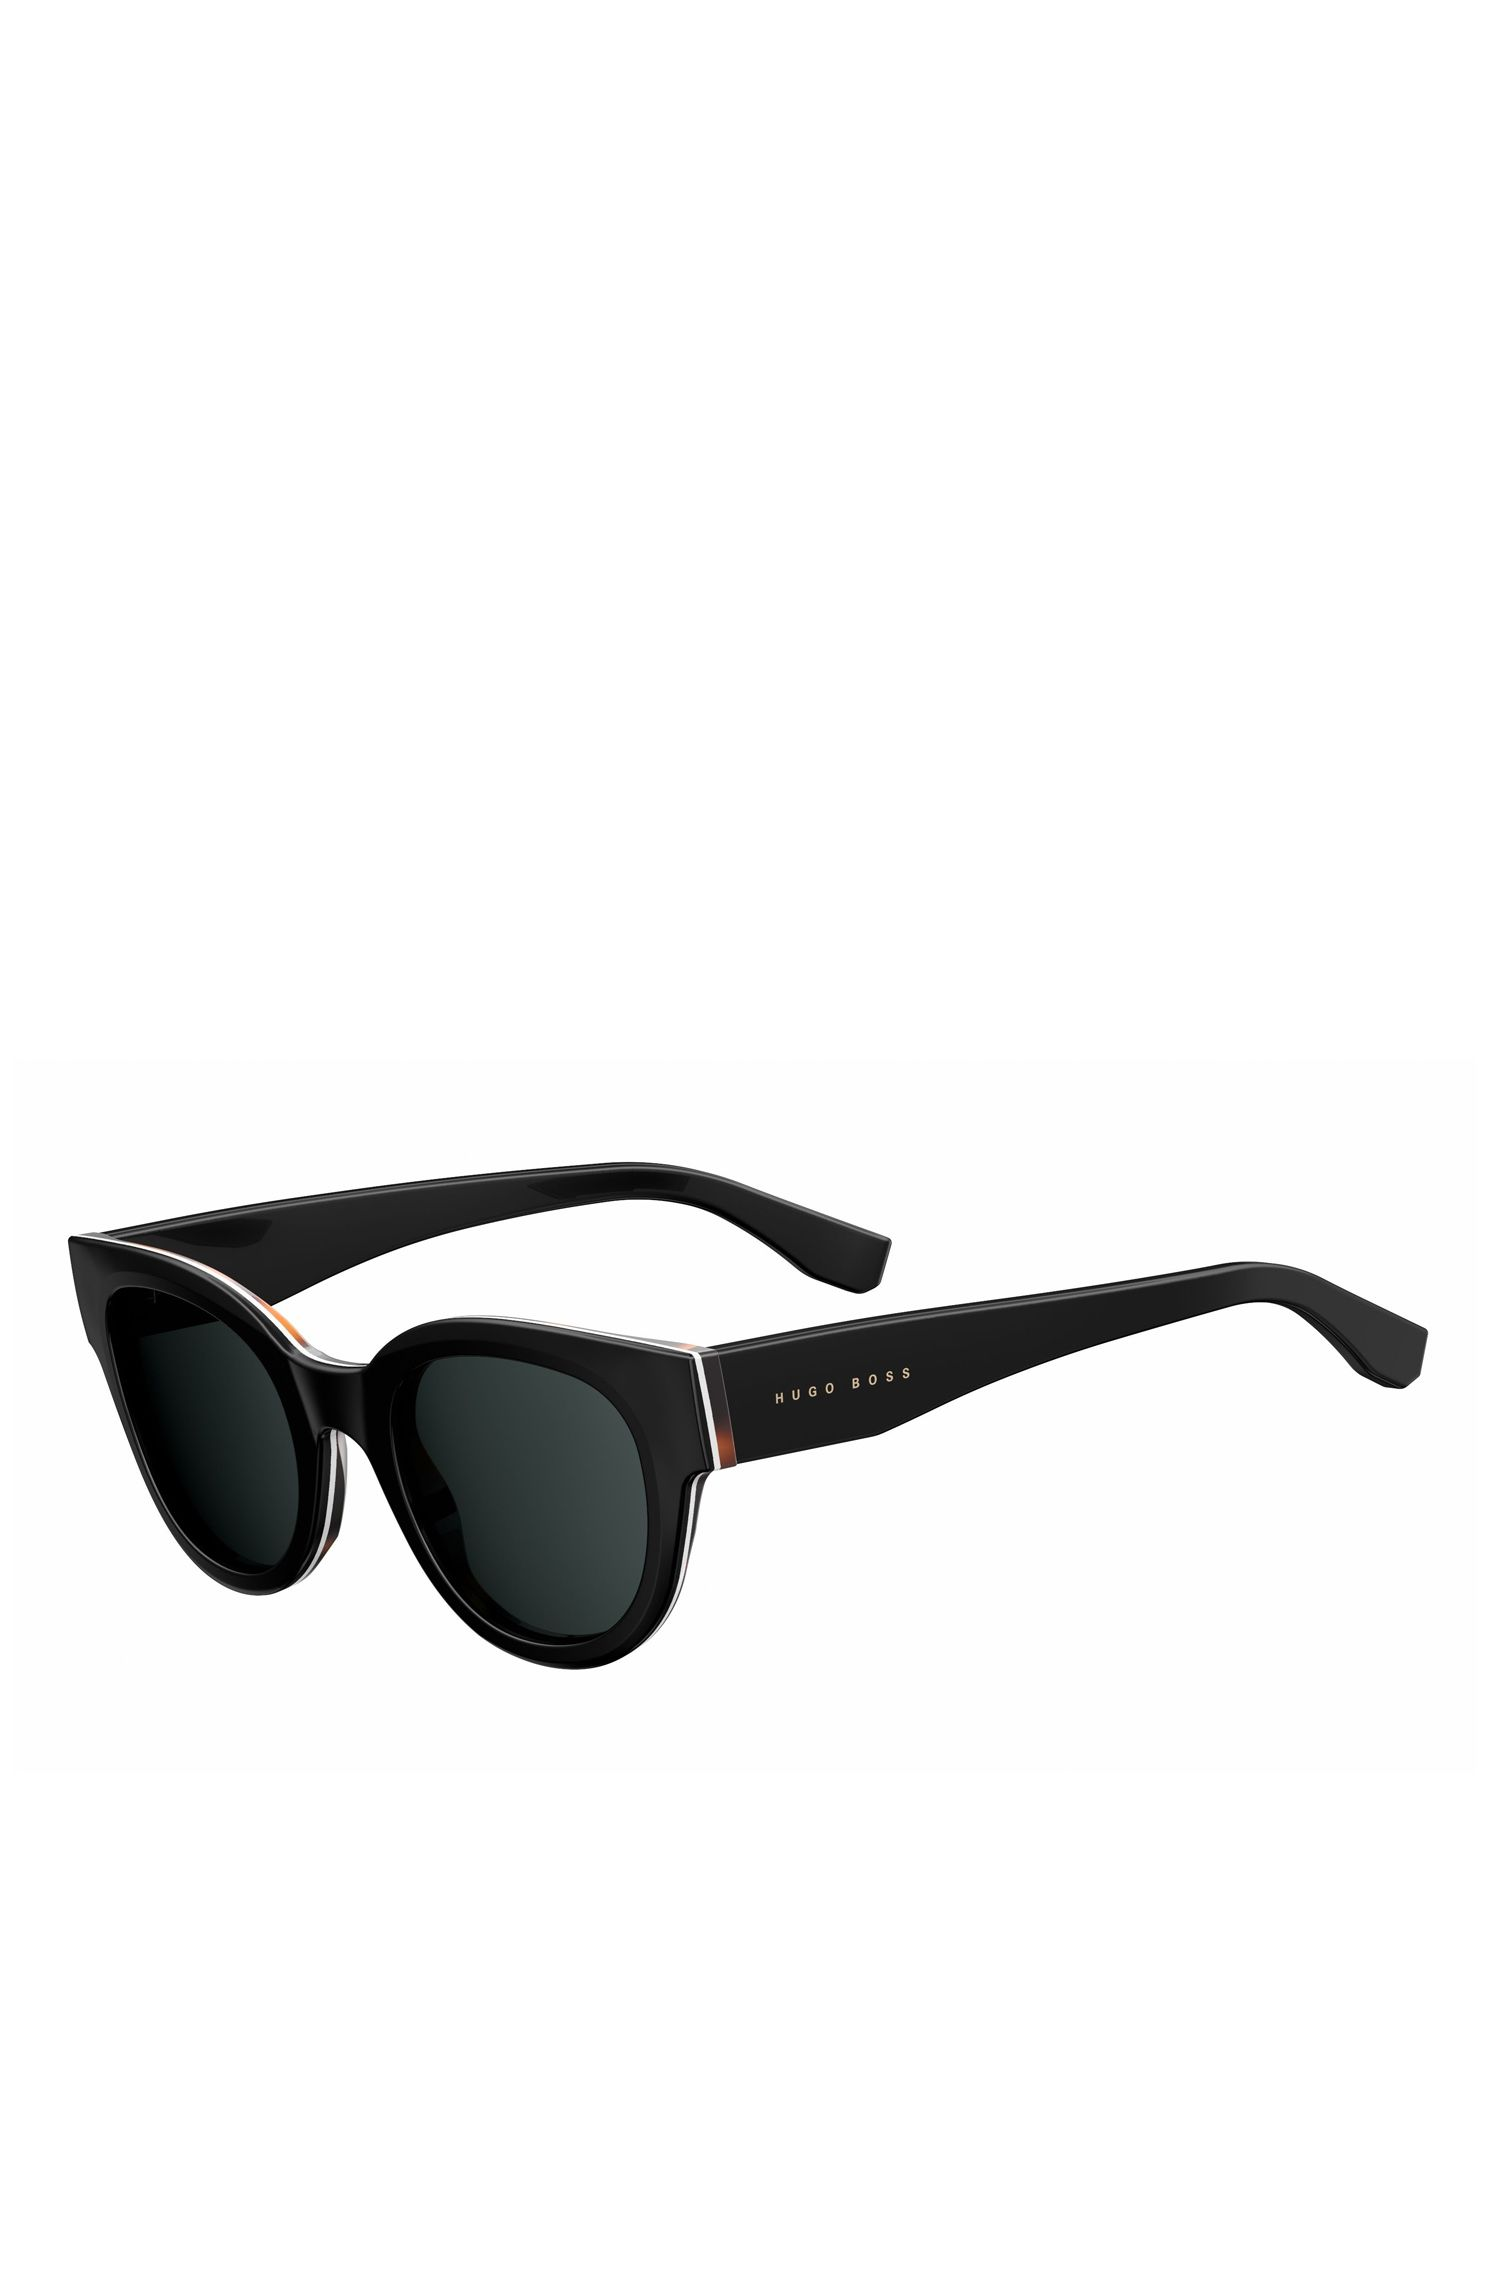 'BOSS 0888S' | Black Lens Block Cat Eye Sunglasses